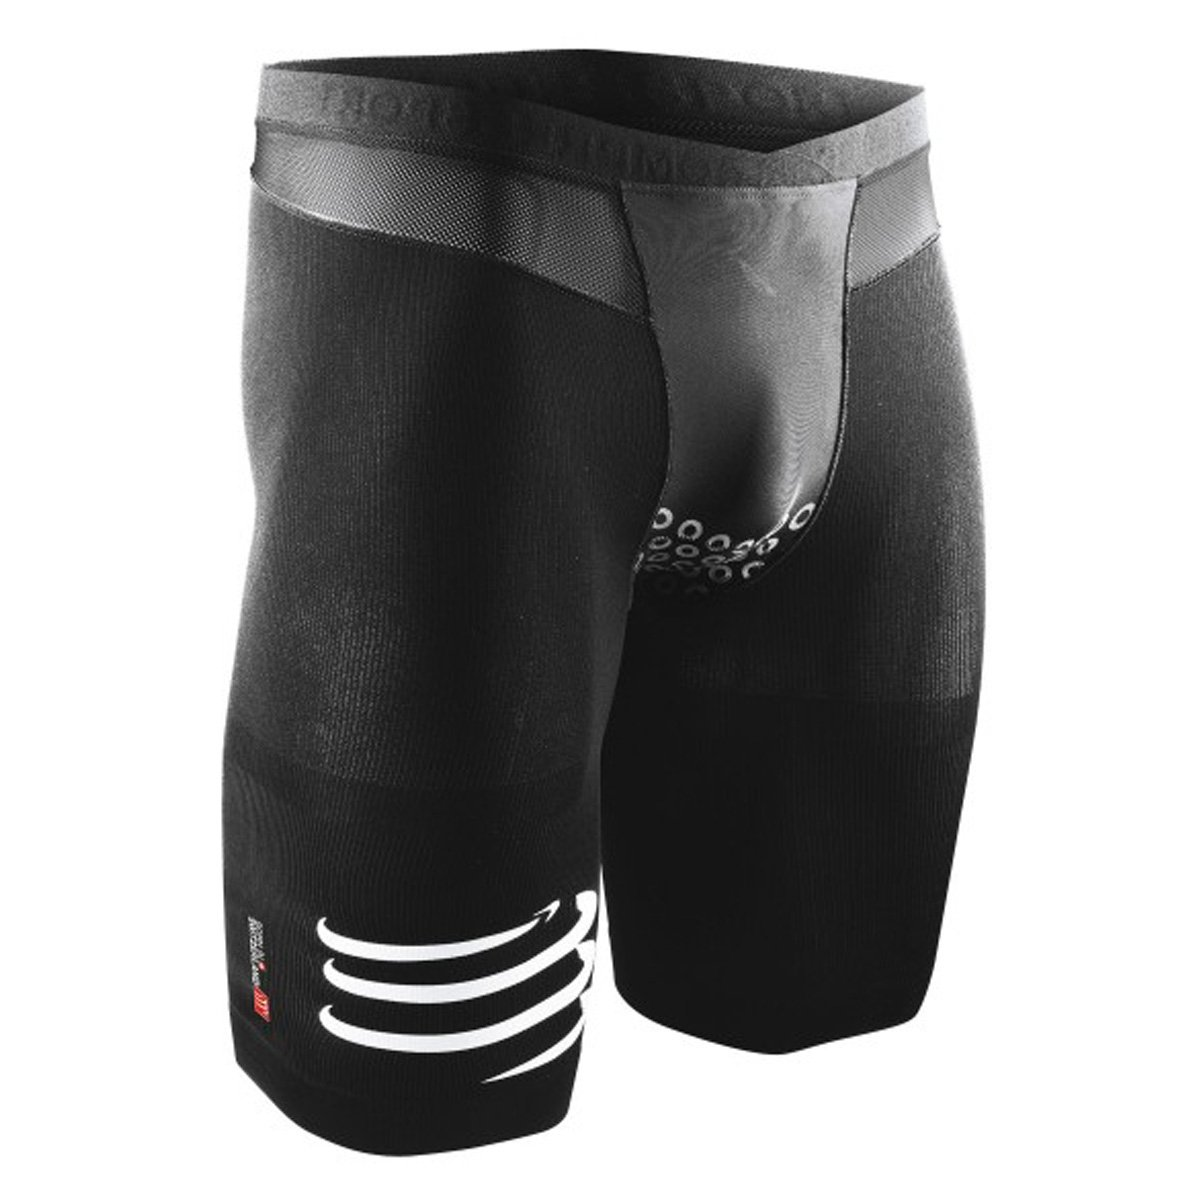 Compressport Triathlon TR3 Brutal Brutal TR3 Shorts V2 53900e